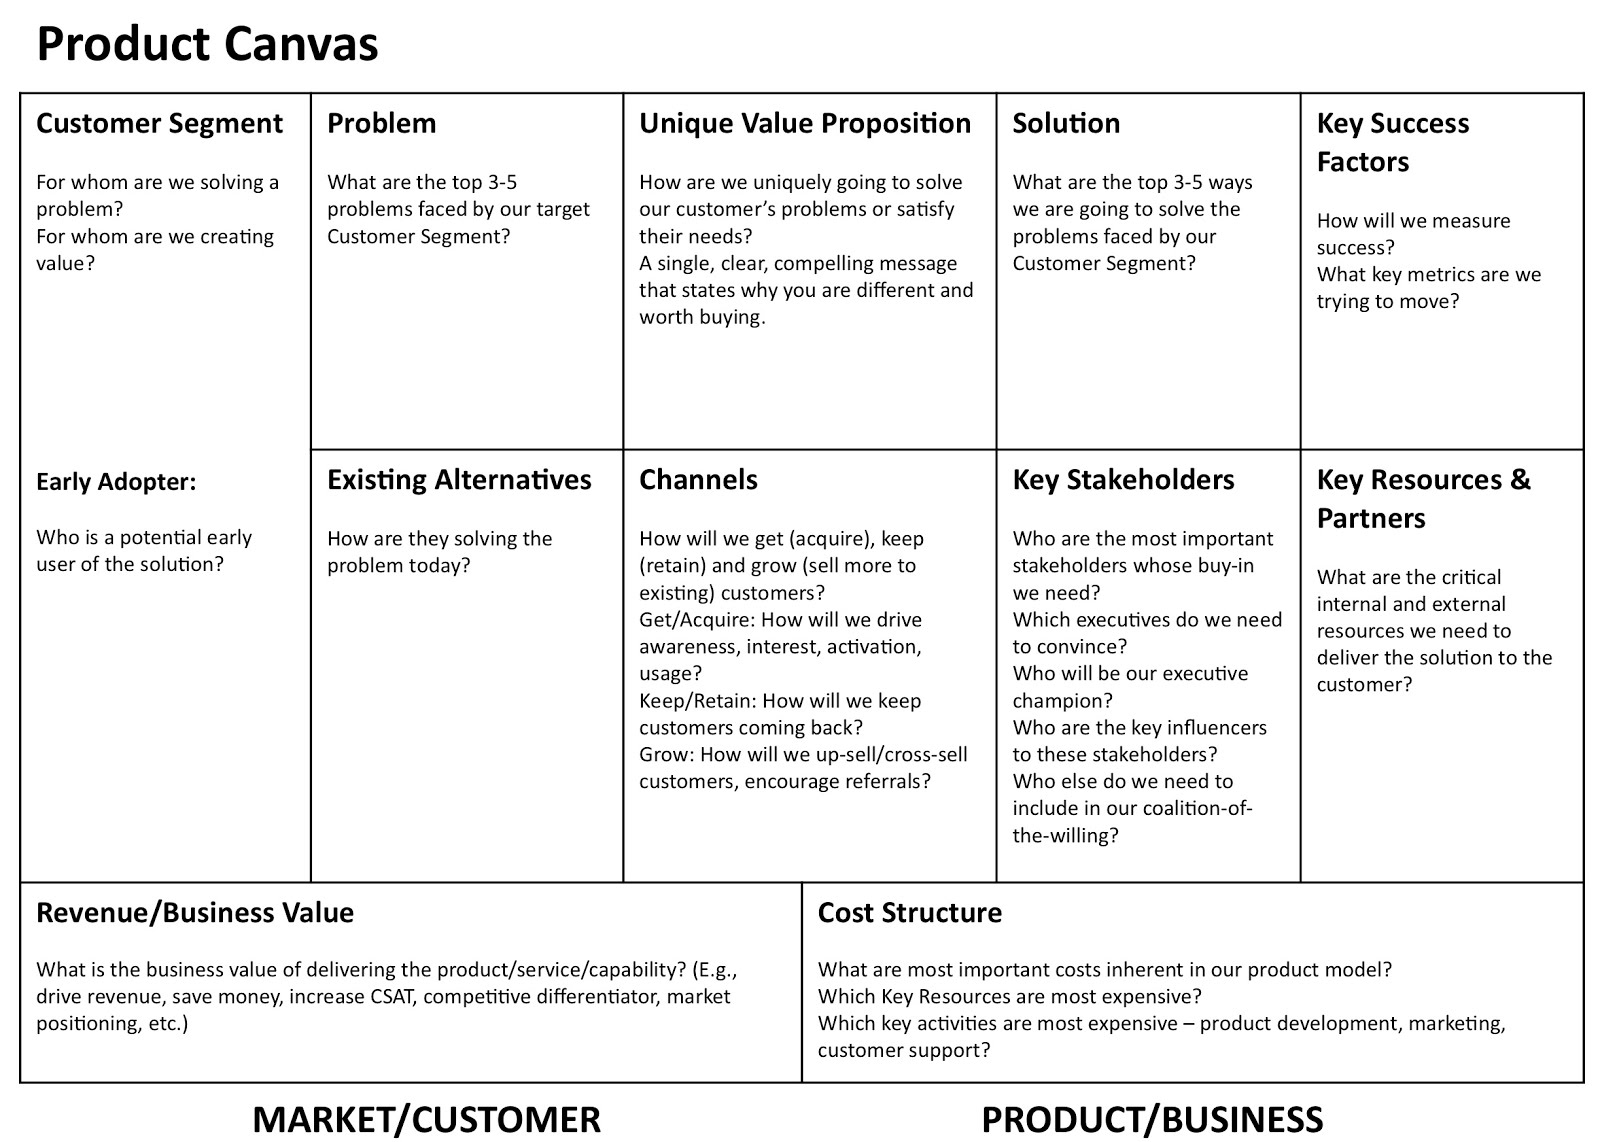 8 Tips For Creating A Compelling Product Vision | Roman Pichler